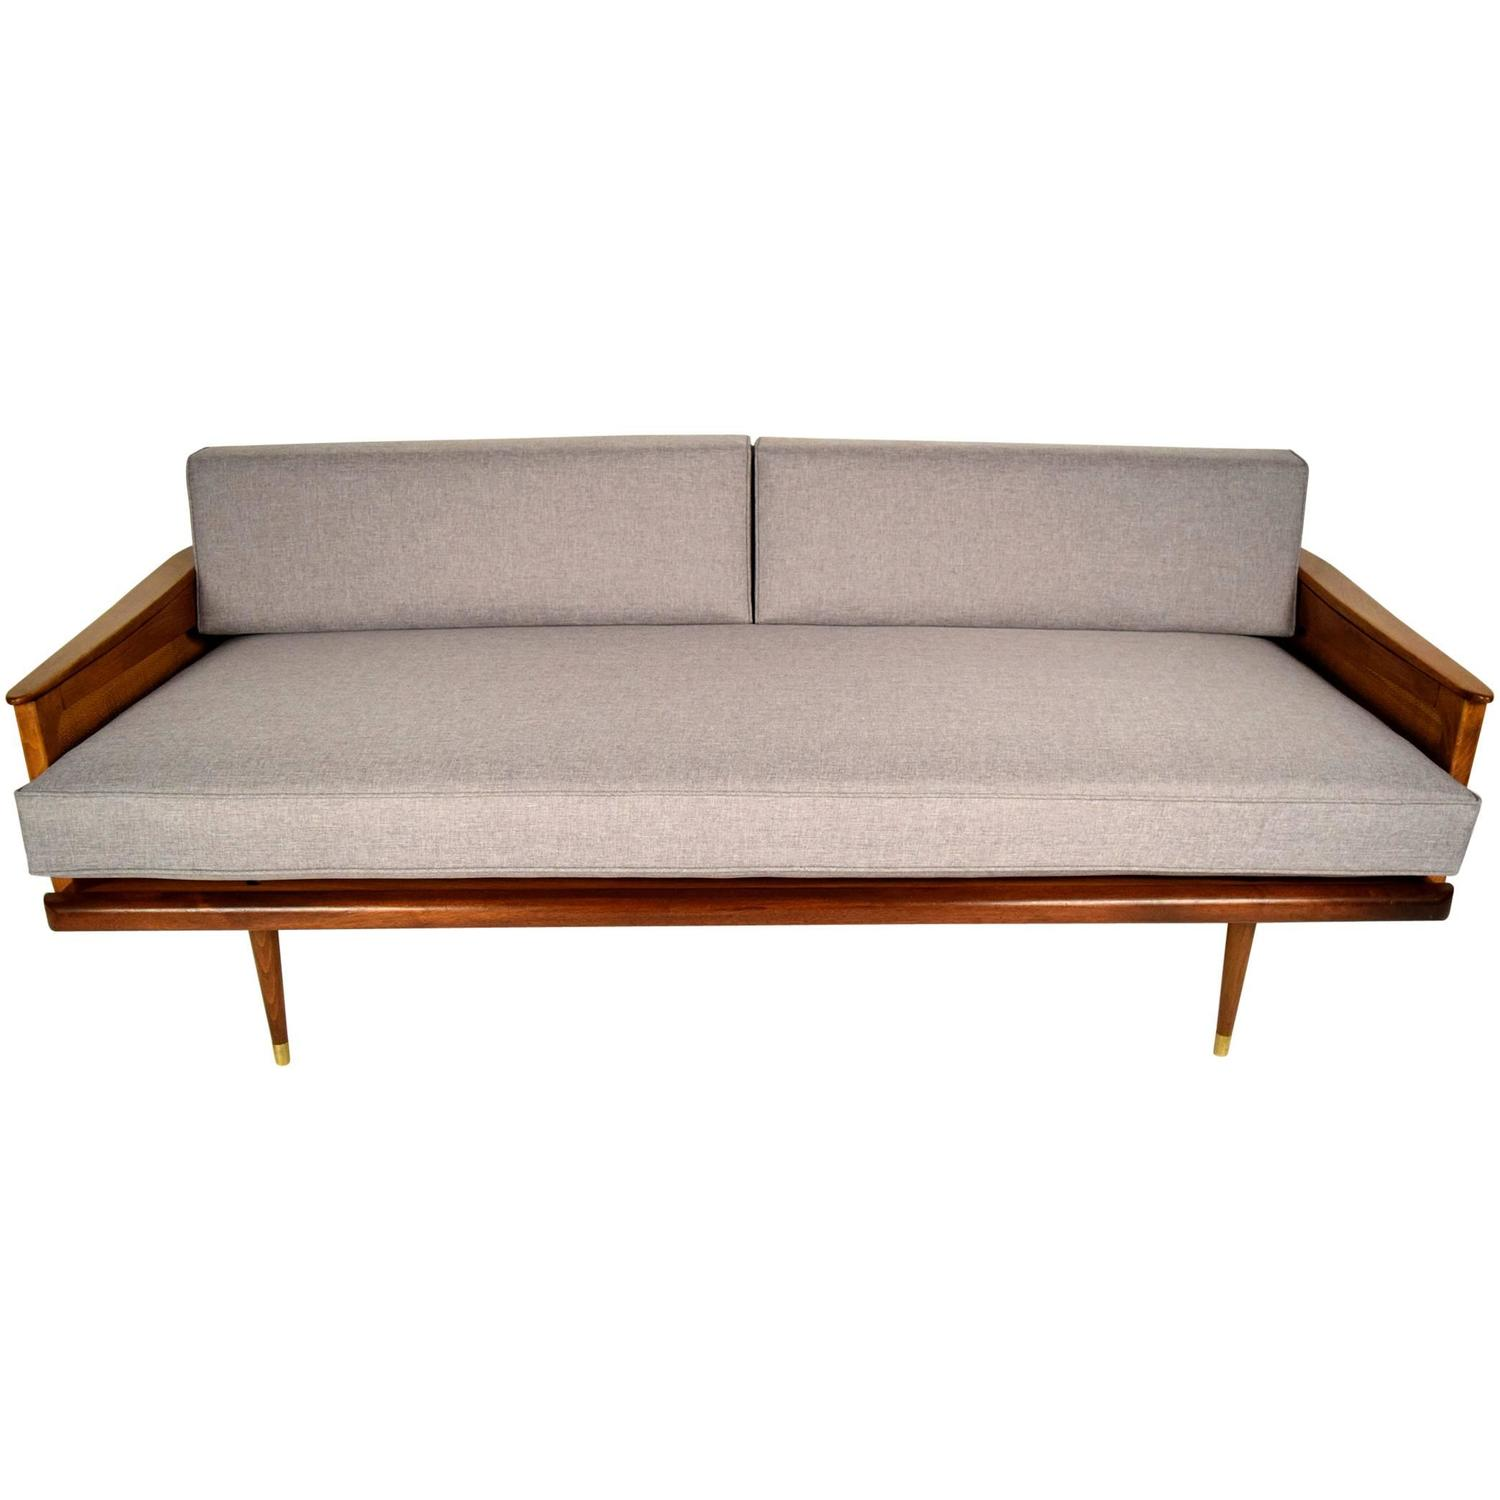 Mid century walnut modern sofa for sale at 1stdibs for Mid century sectional sofa for sale